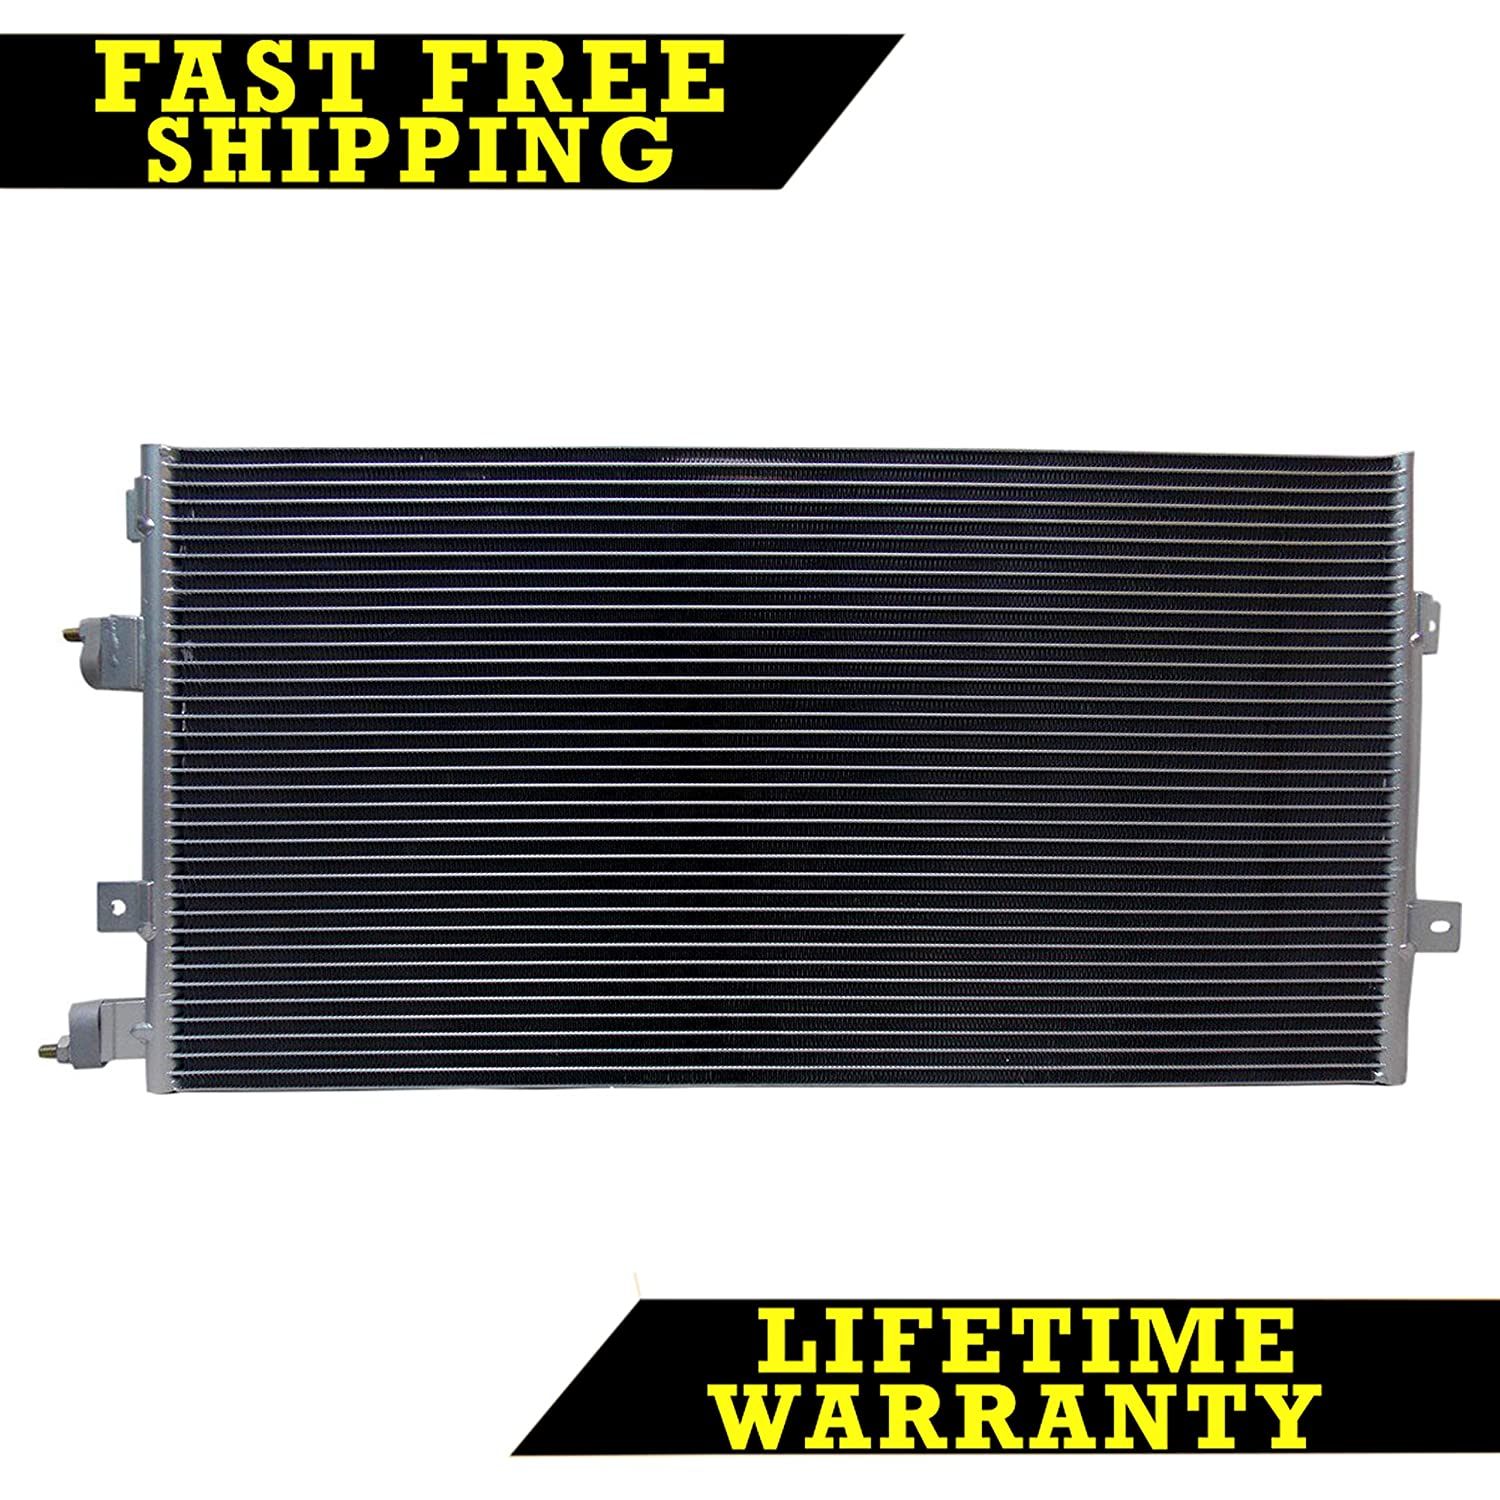 Amazon.com: AC A/C CONDENSER FOR CHRYSLER DODGE FITS CONCORDE 300M LHS  INTREPID V6 4974: Automotive